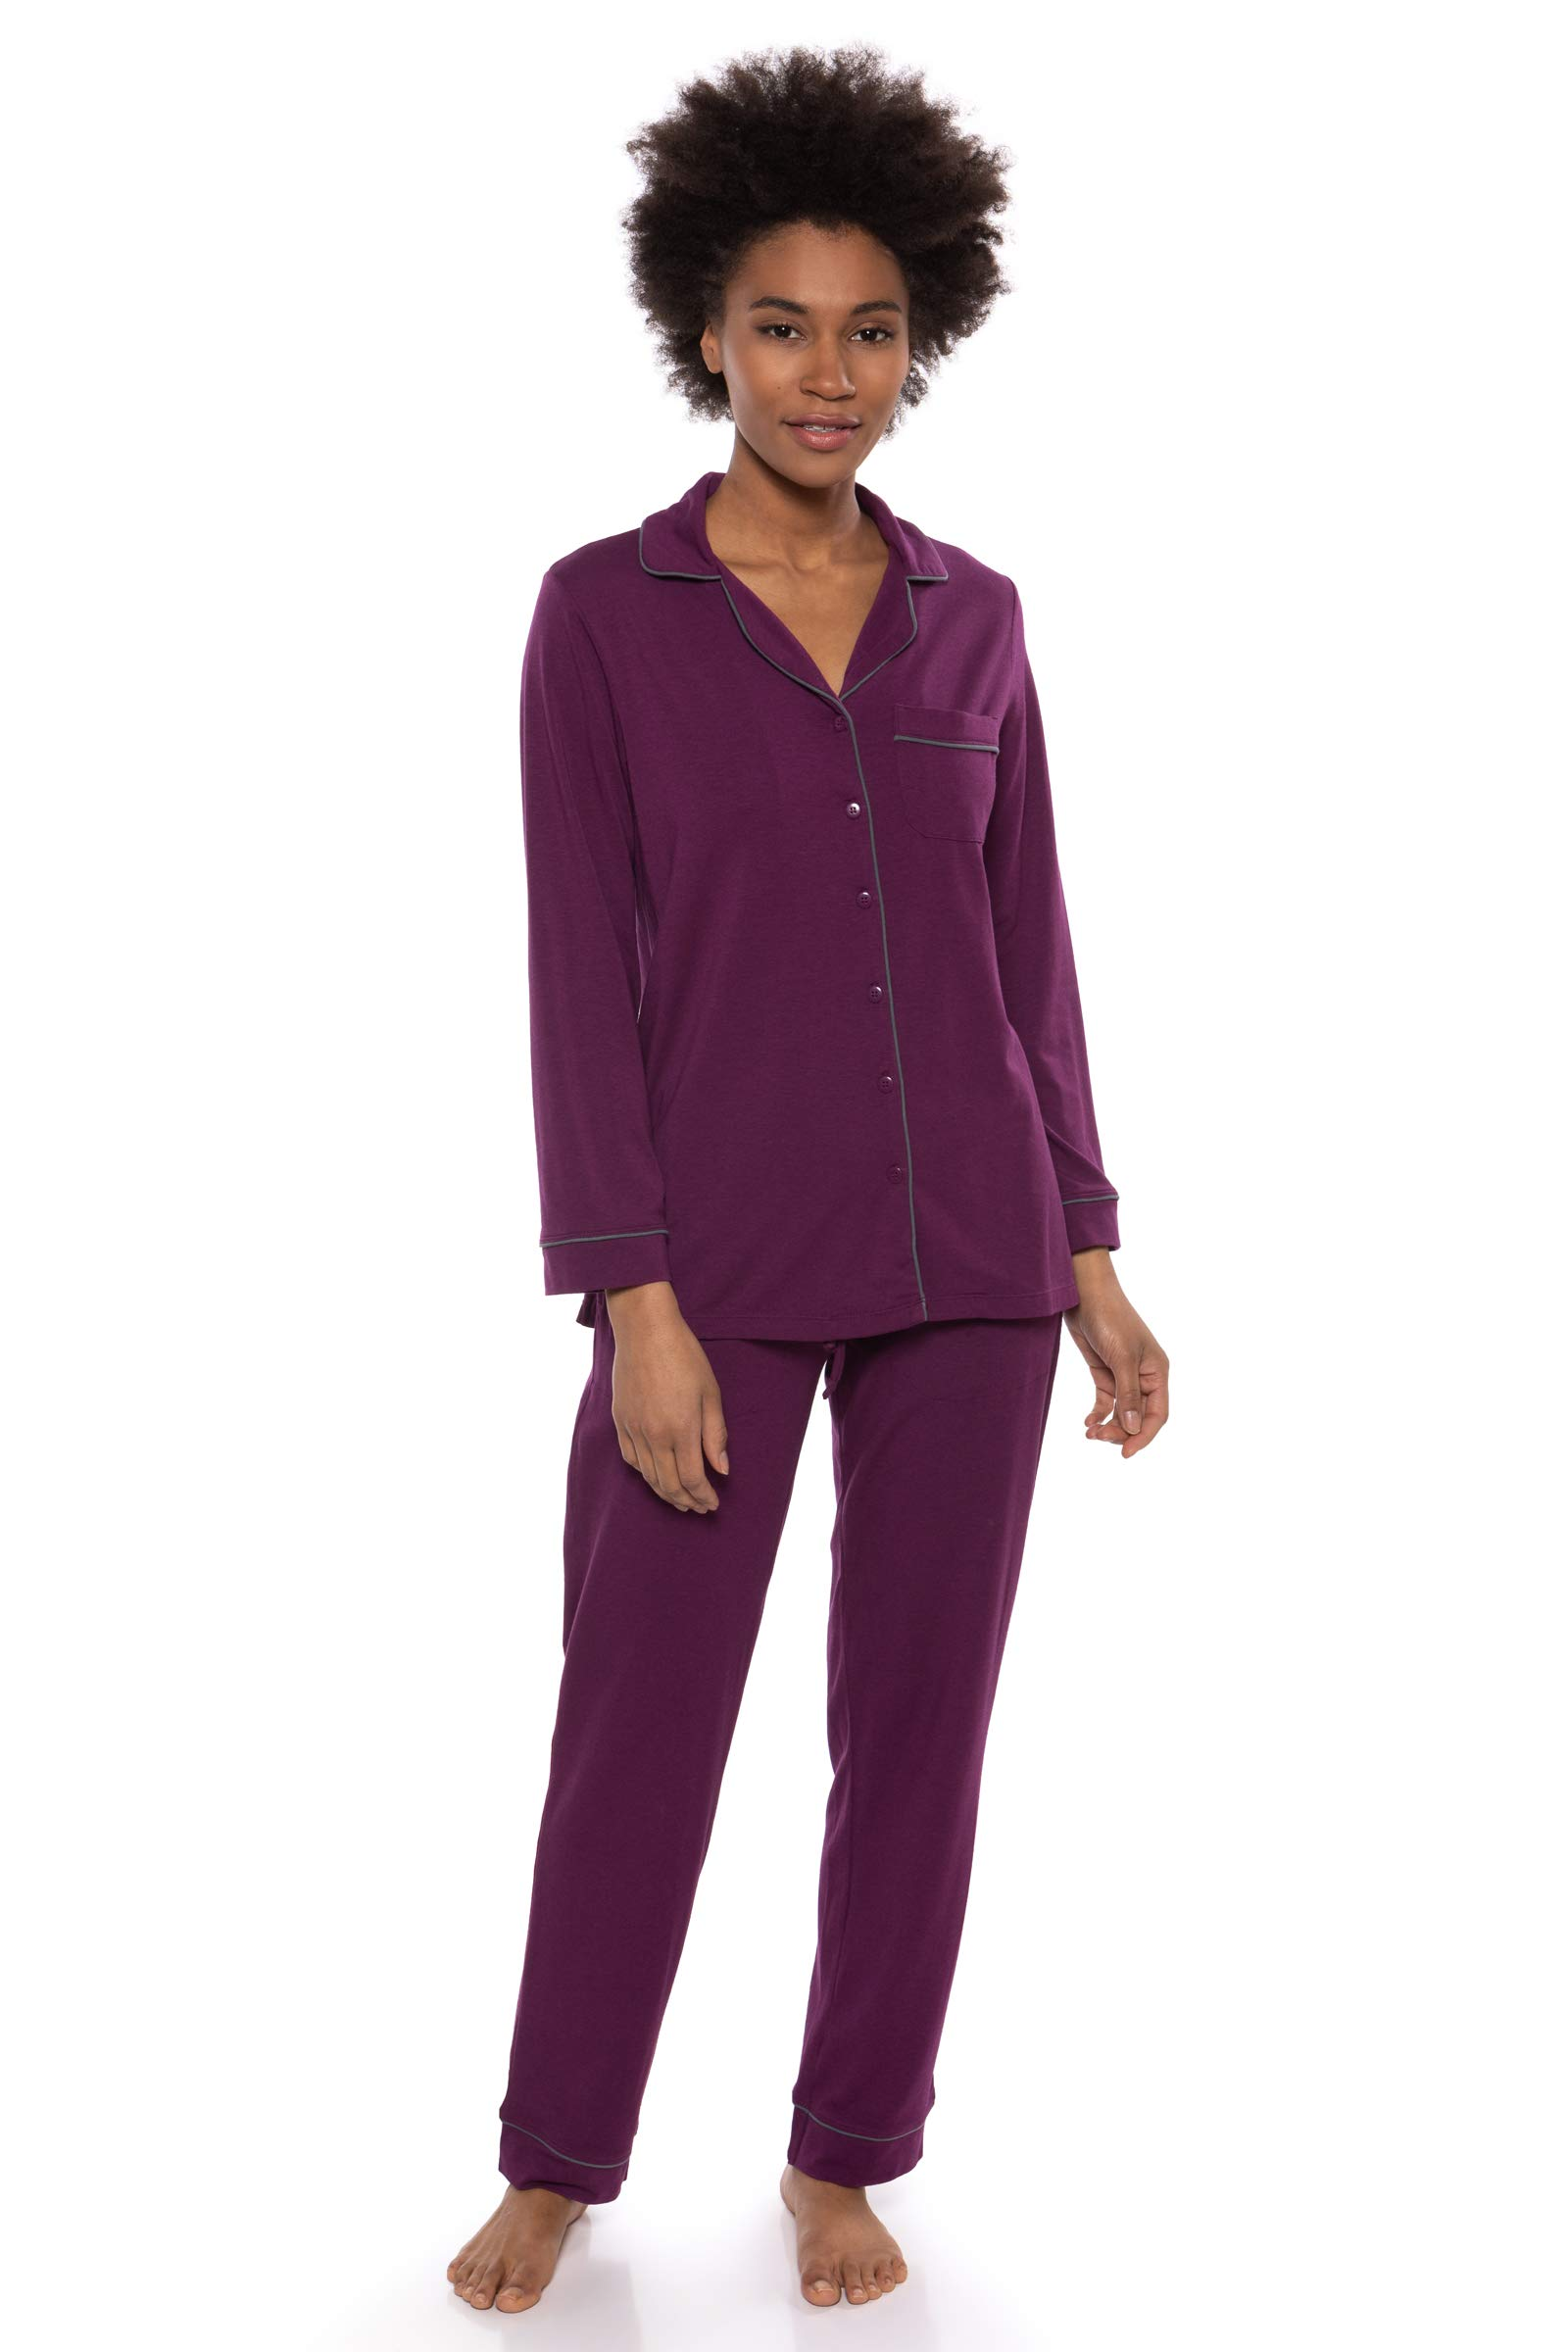 Texere Women's Button-Up Long Sleeve PJs (Classicomfort, Concord Grape, MP) by TexereSilk